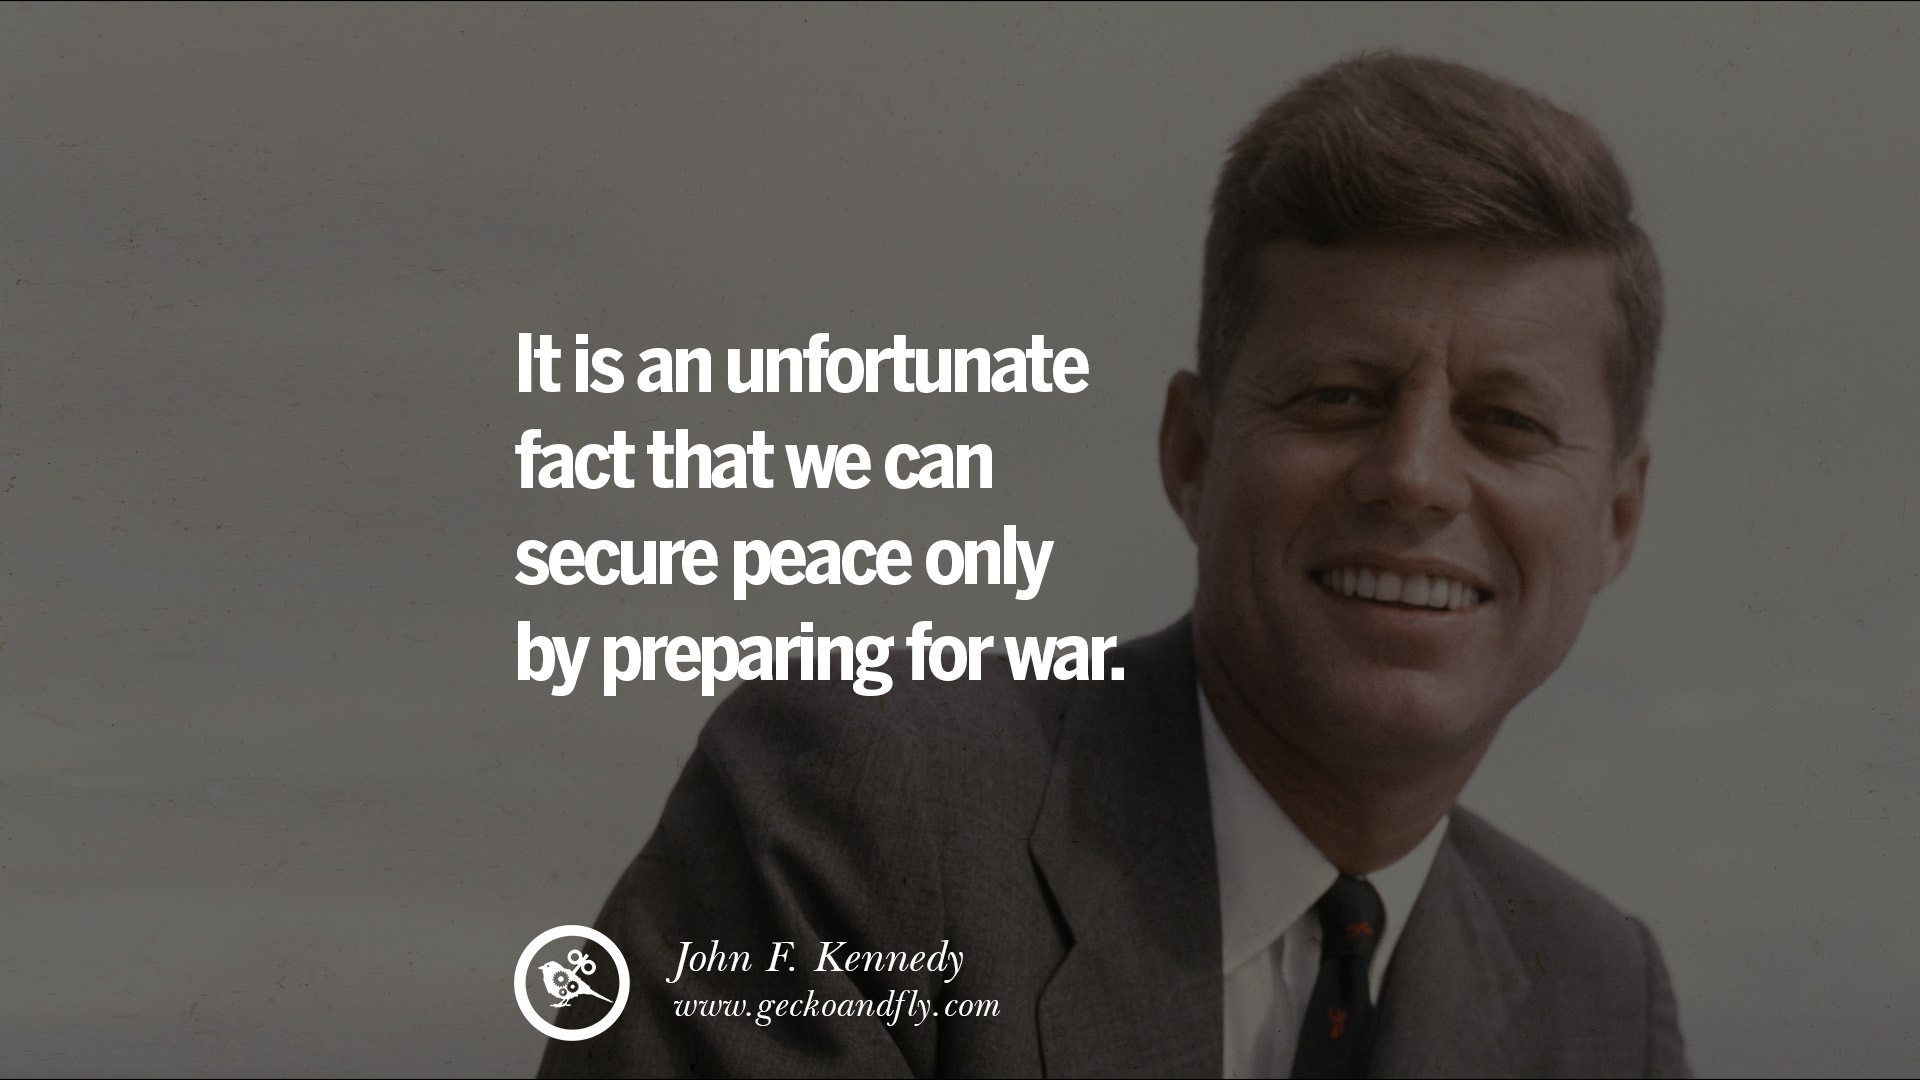 16 famous president john f kennedy quotes on freedom peace war and country geckoandfly 2018 - Peace Quotes